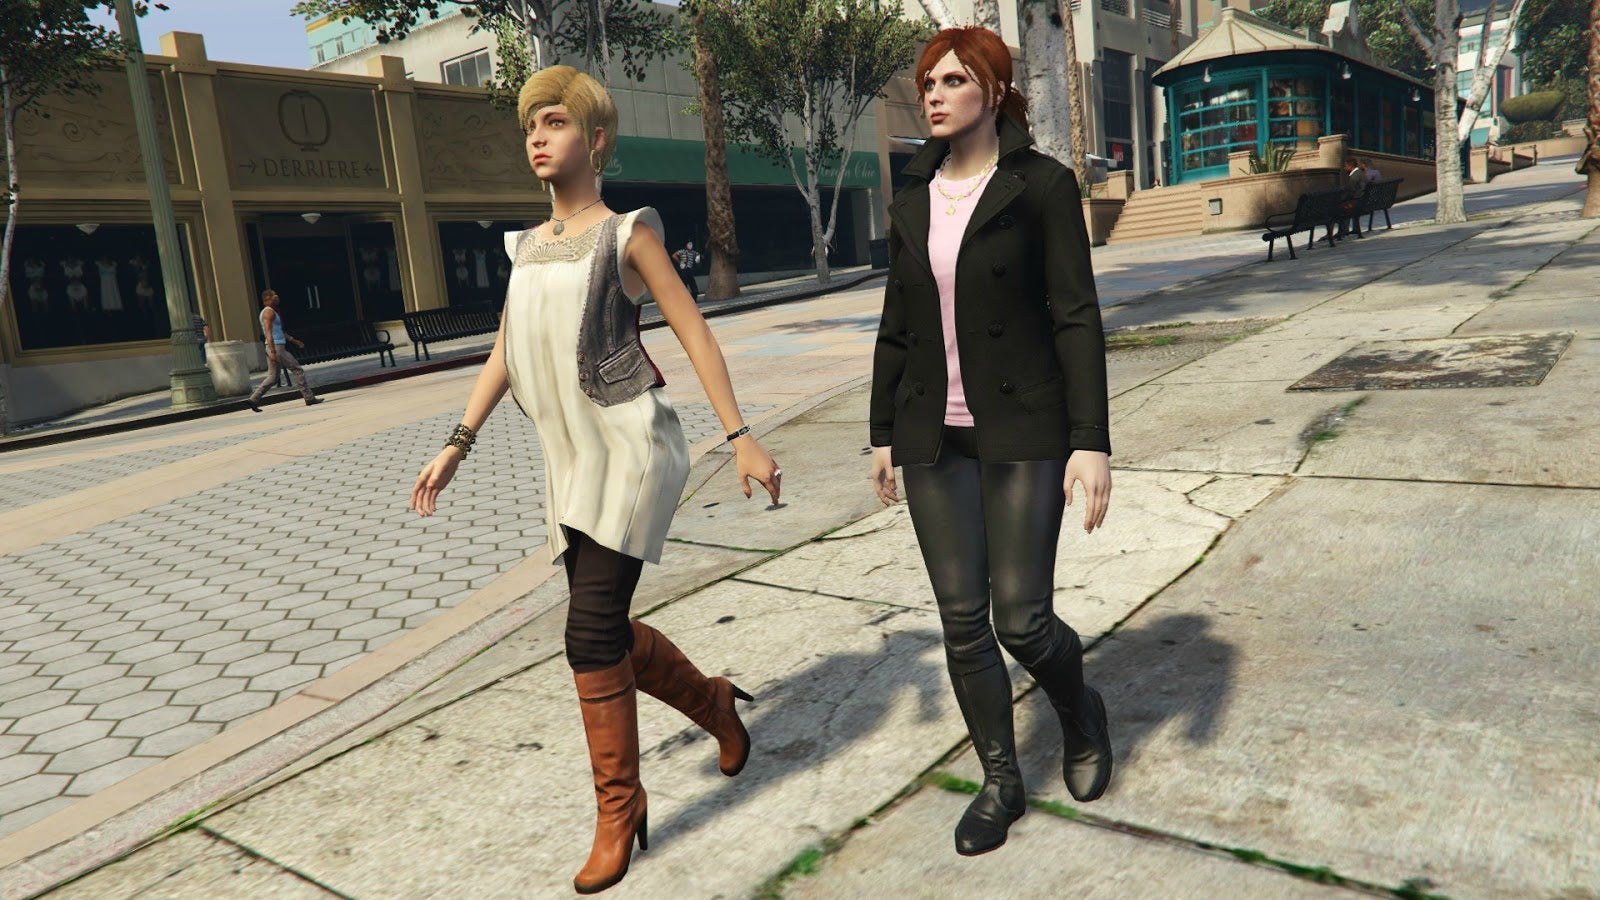 Gta Want Much Better Clothes For Women Players Frustrated Online 8kn0wOP